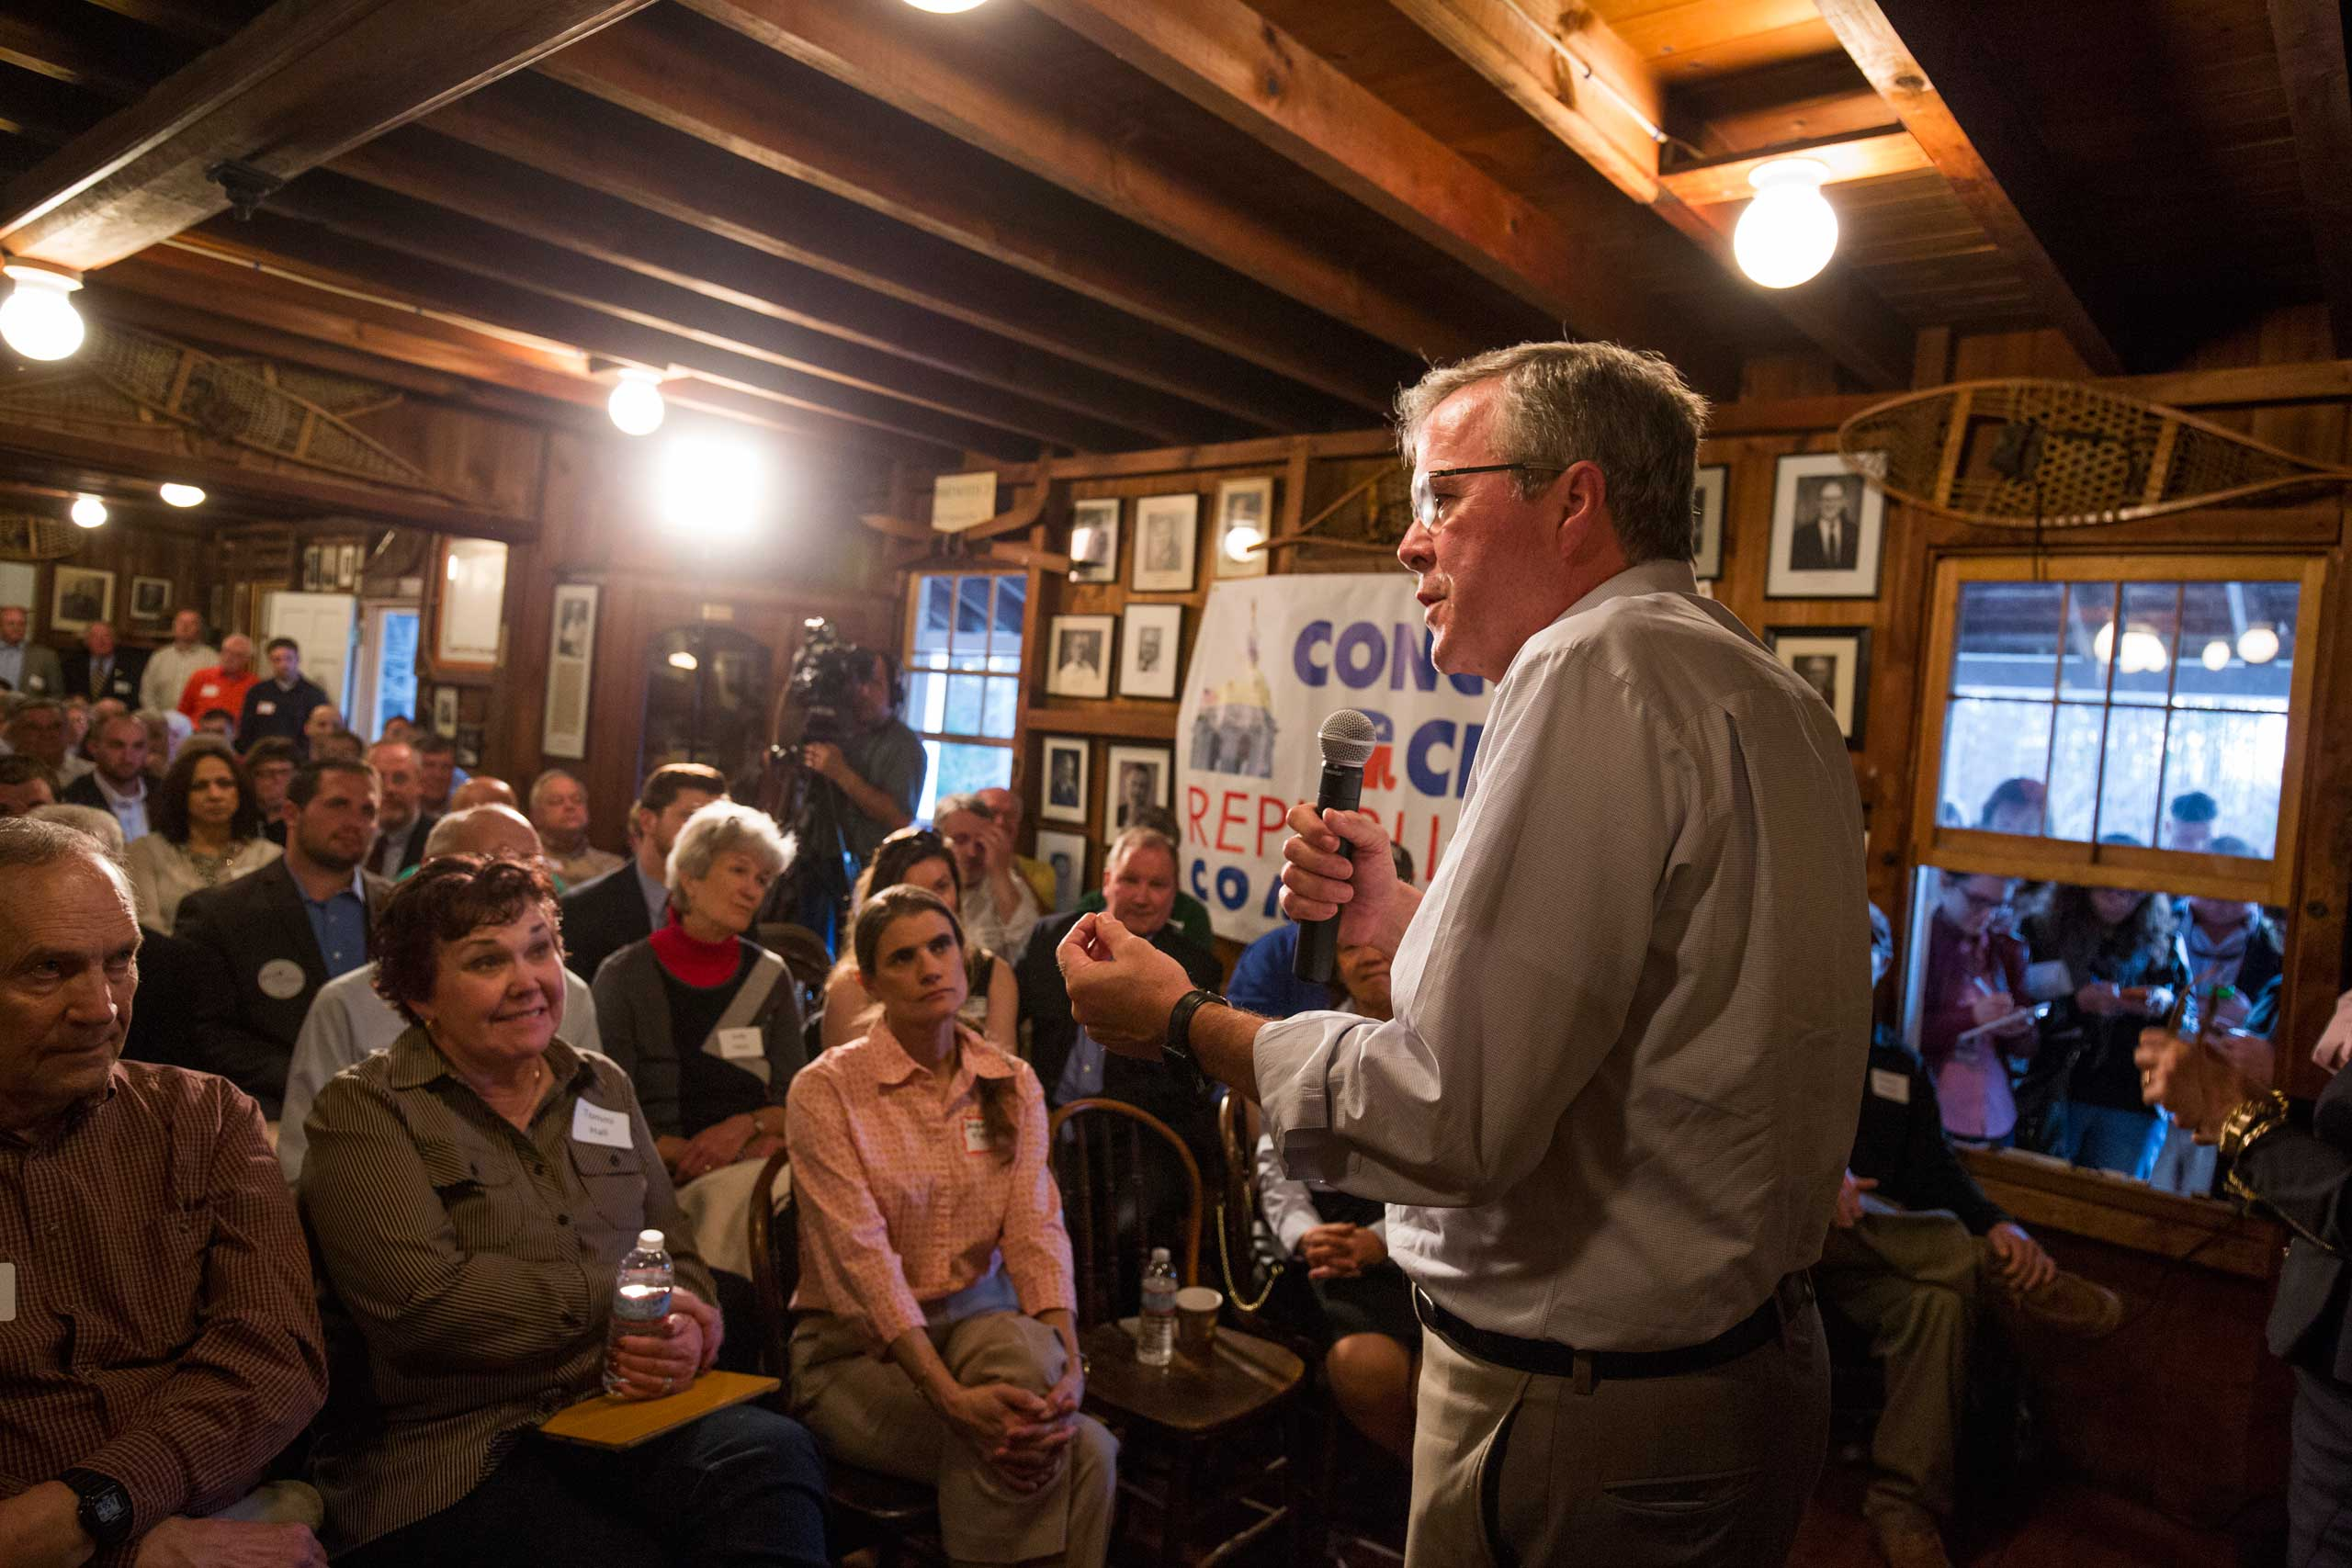 """Jeb Bush speaks at the Concord City Republican Committee's """"Politics and Pies"""" series  at the Concord Snowshoe Club in Concord, N.H. on April 16, 2015."""